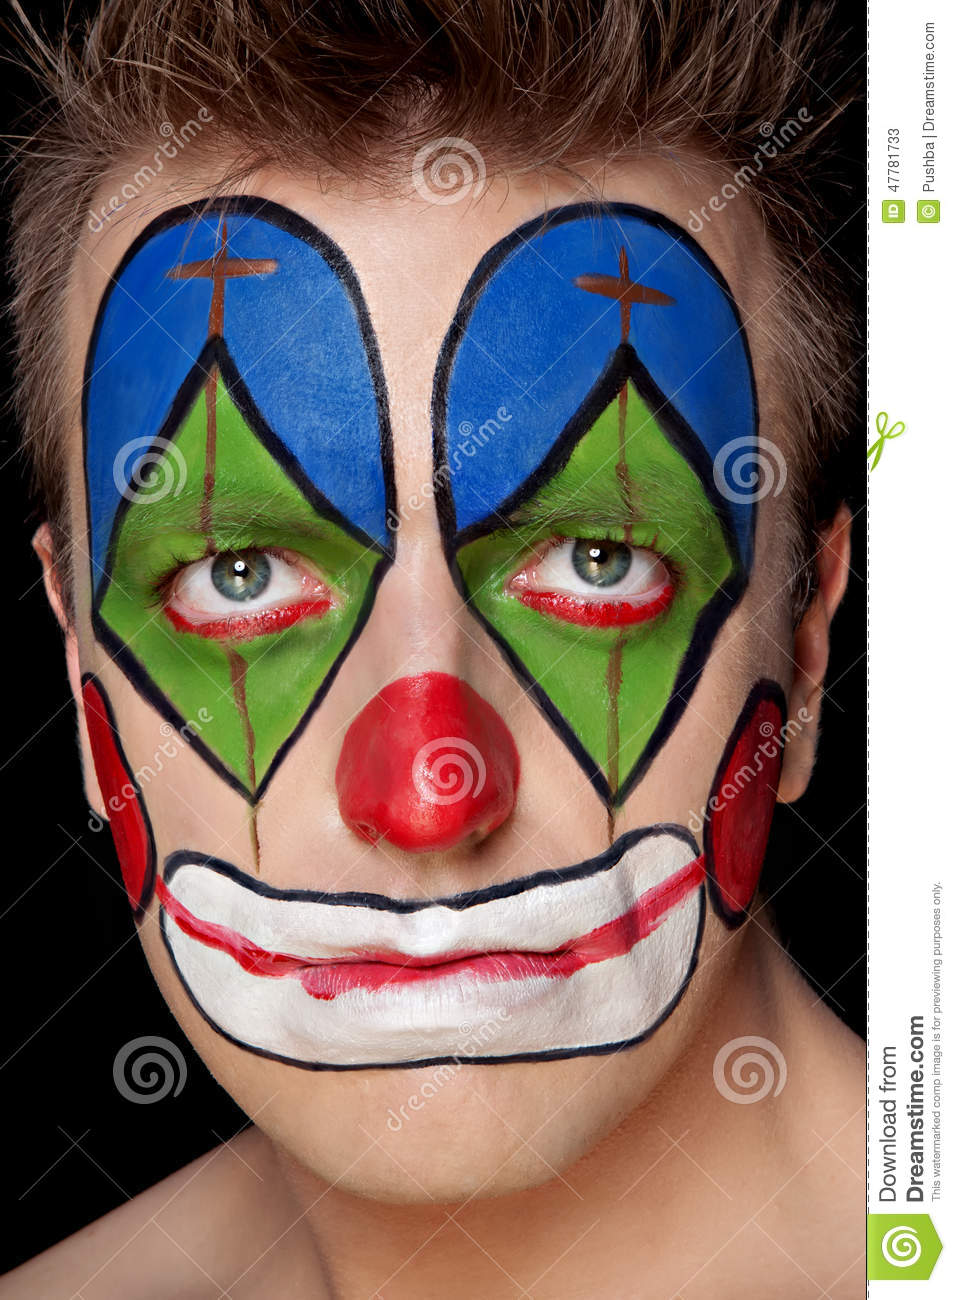 Jester Makeup Ideas Stock Photos, Pictures & Royalty-Free